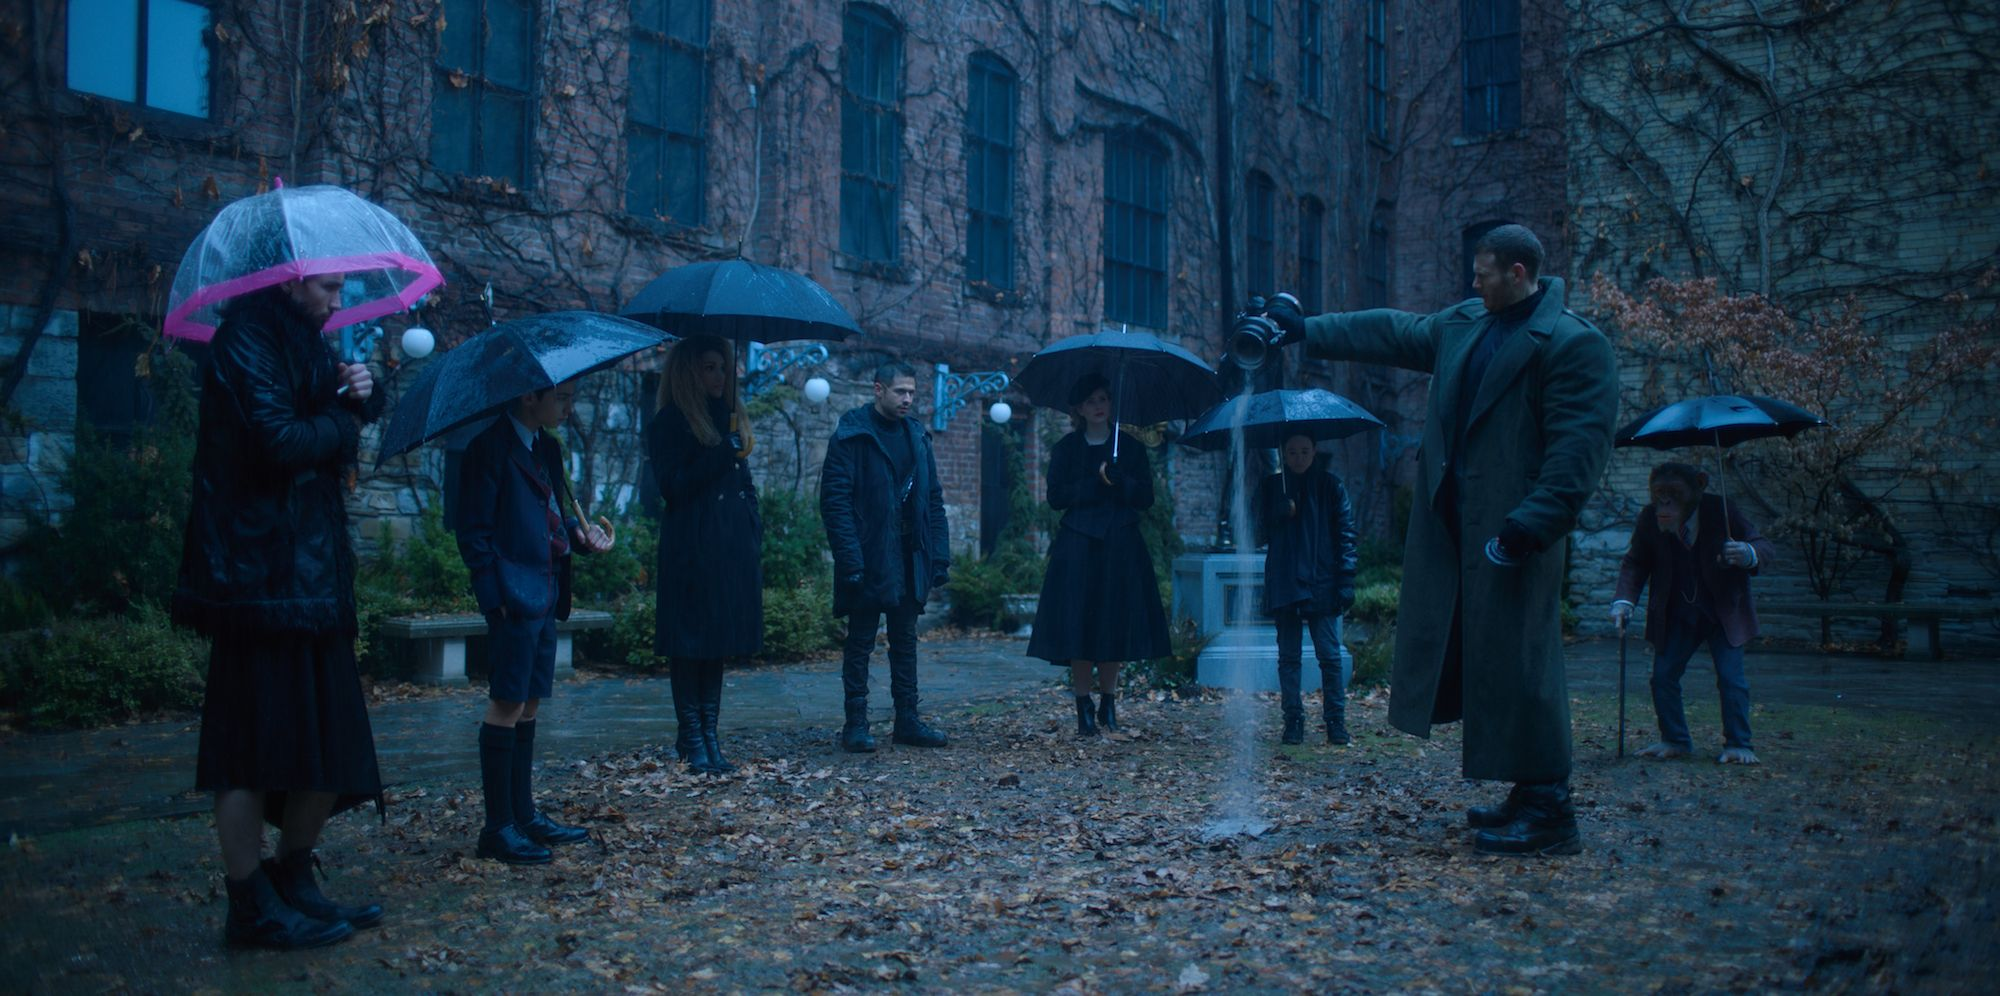 The Umbrella Academy: Jordan Claire Robbins on Playing a